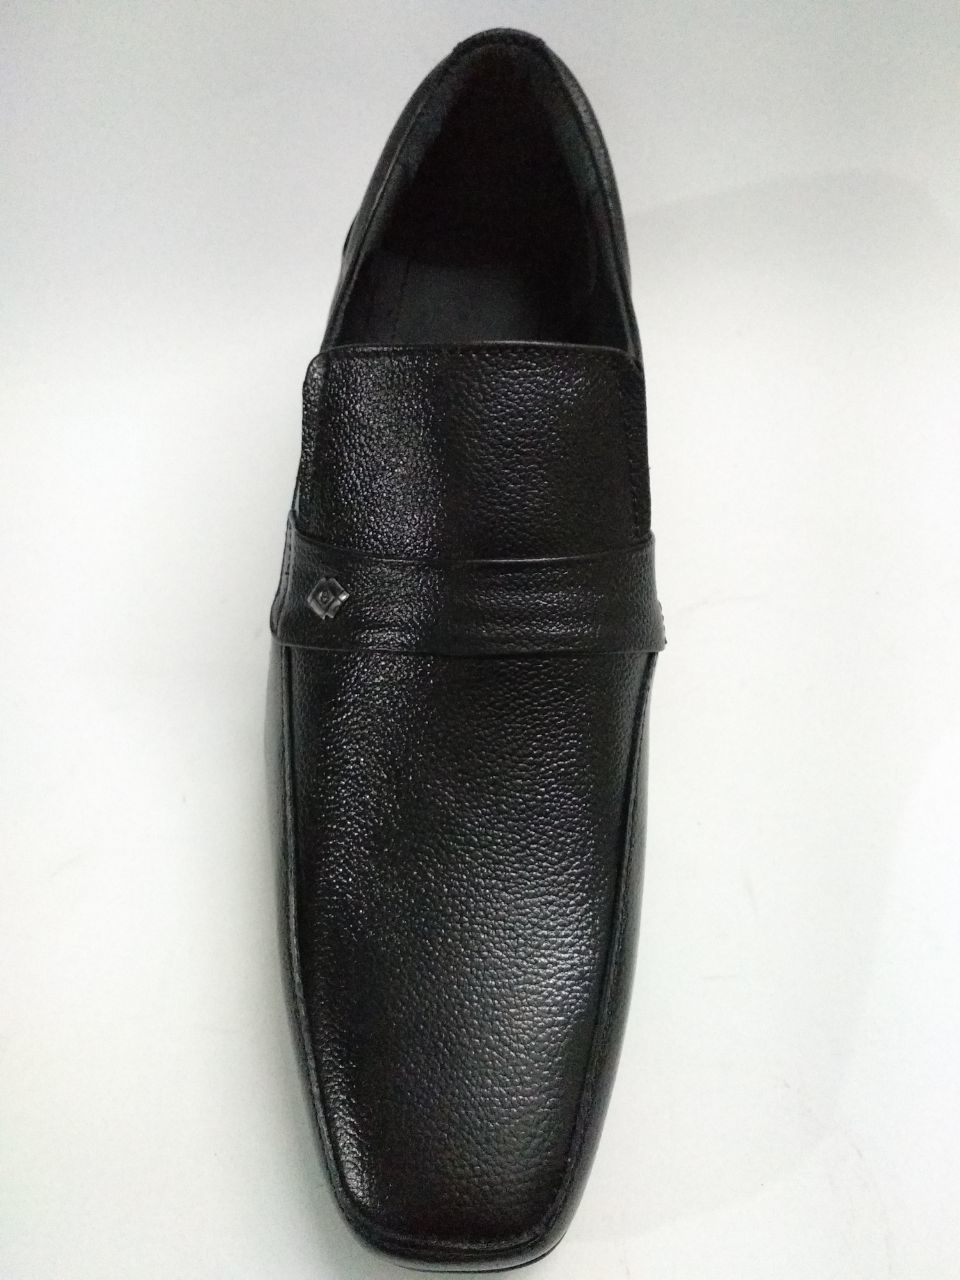 FORMAL SLIP-ON LEATHER SHOES FOR MEN'S